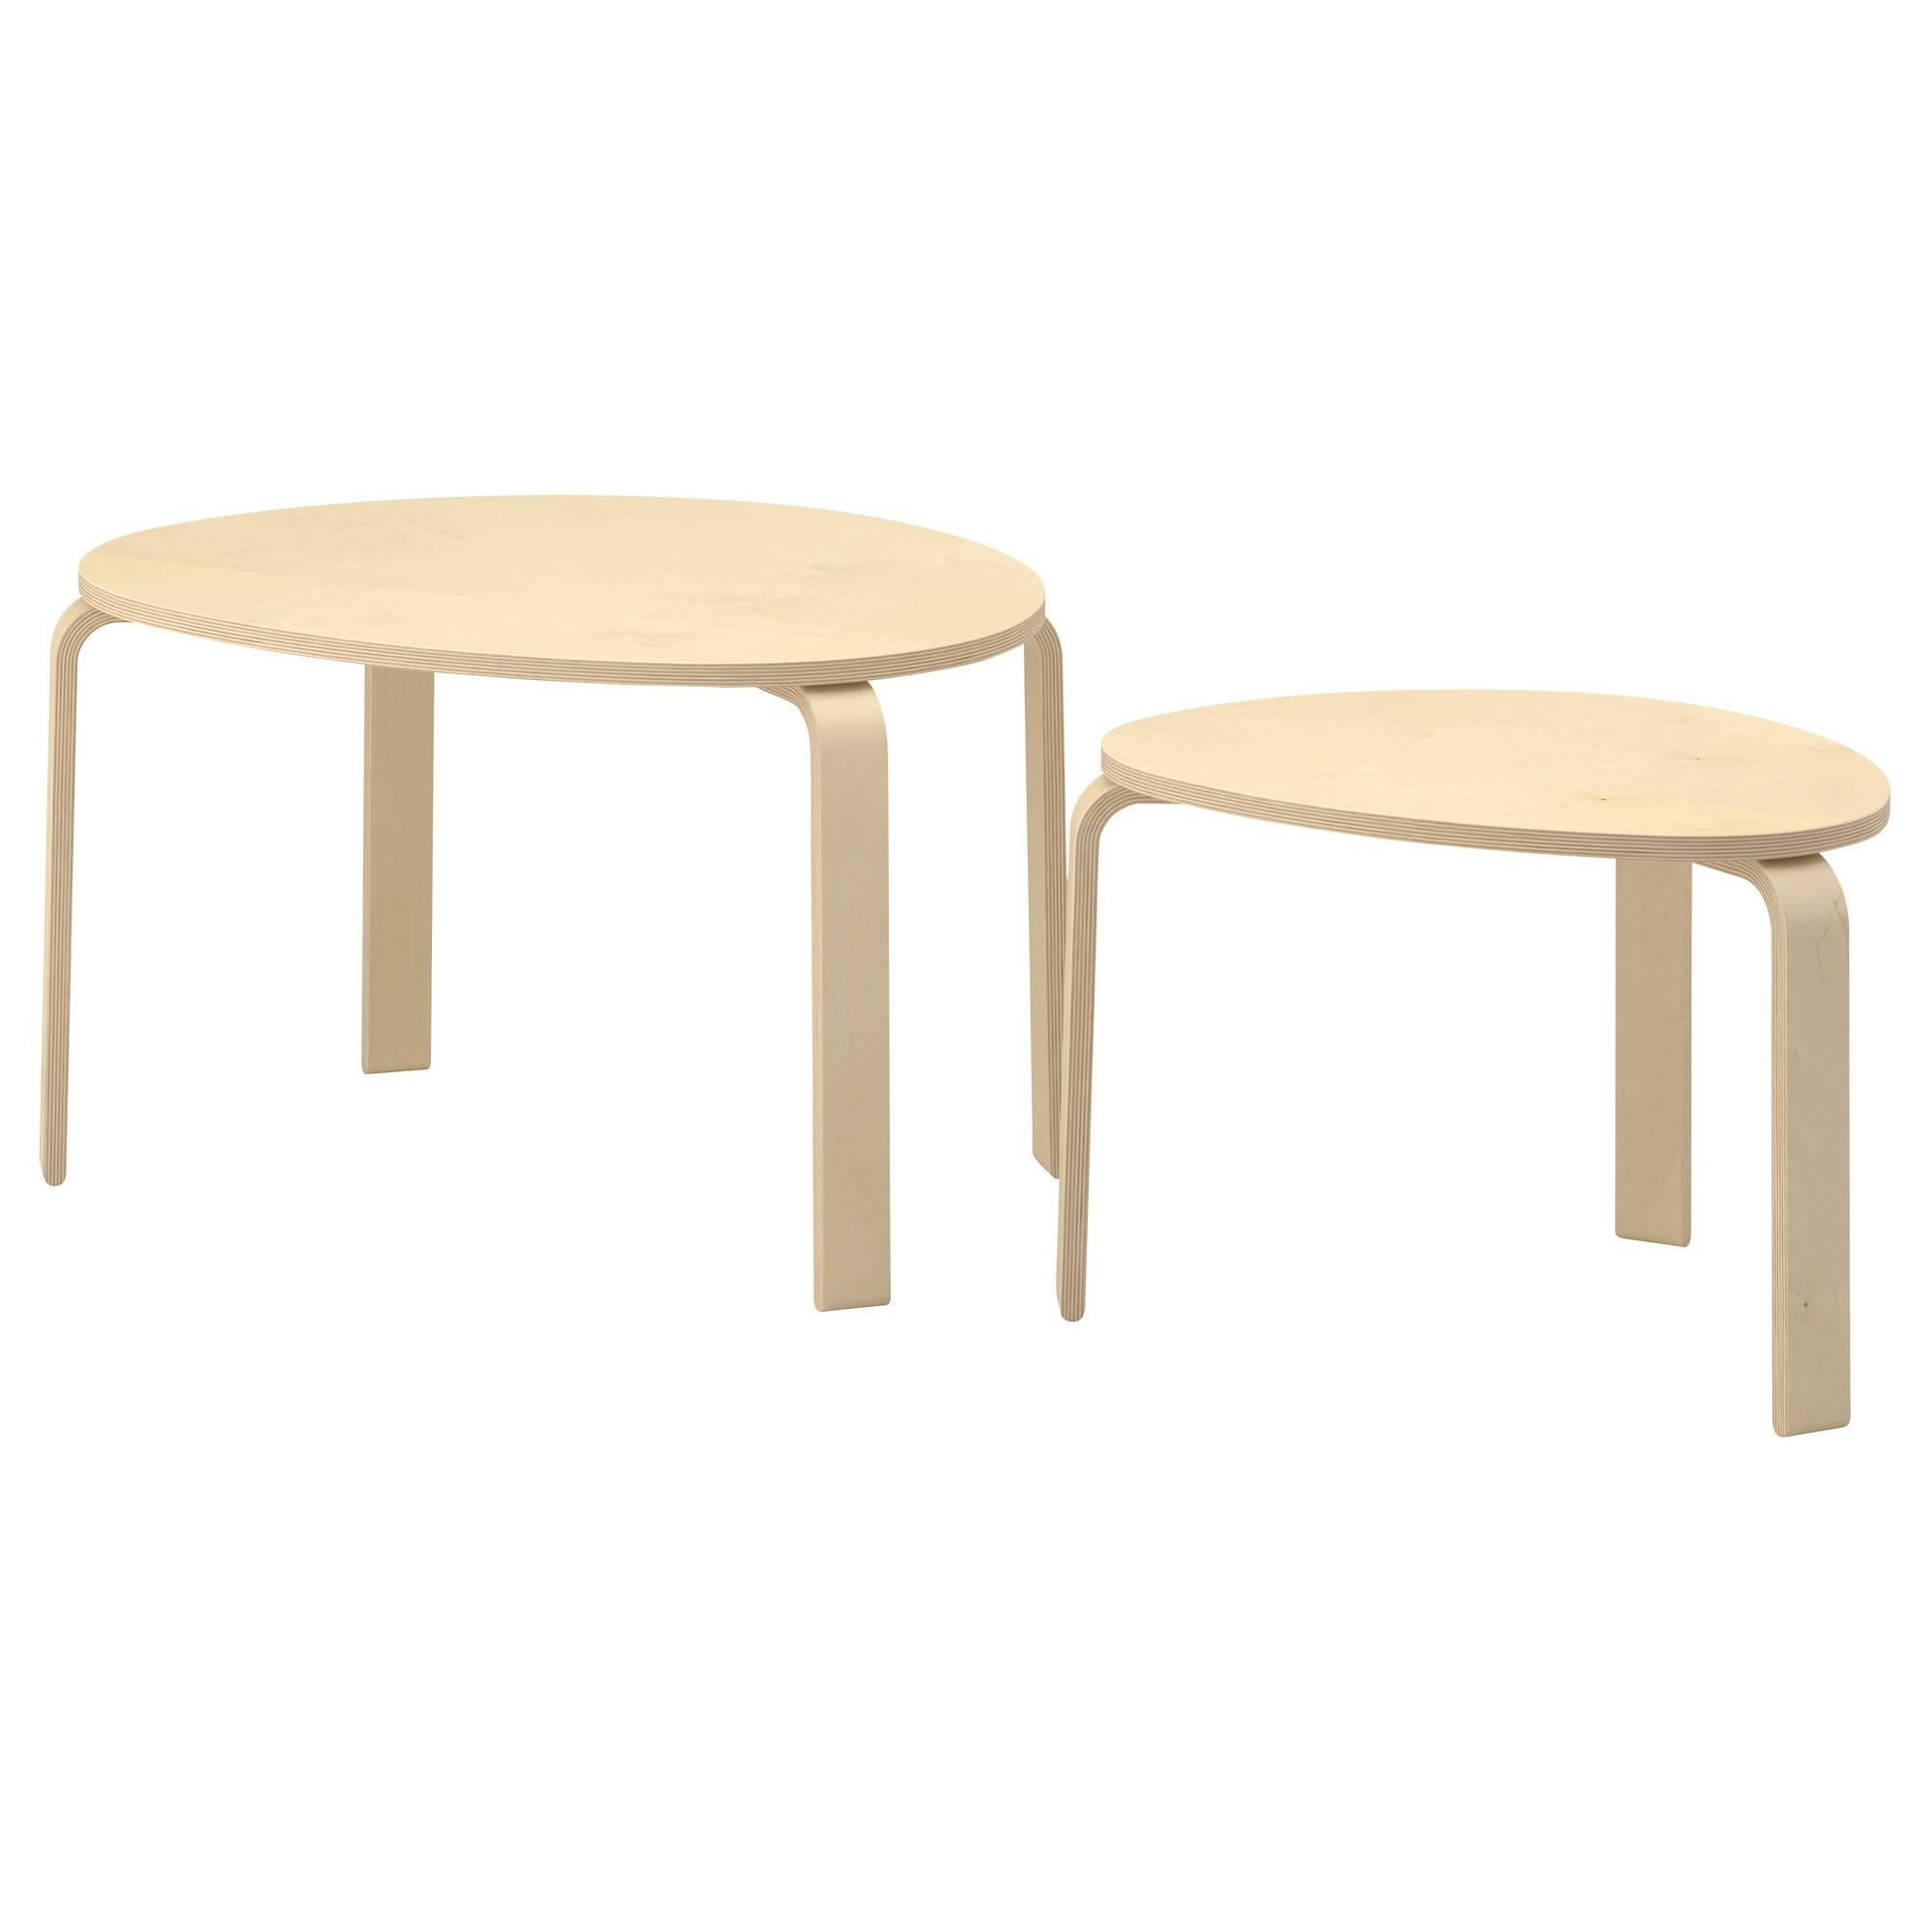 Svalsta Nesting Tables, Set Of 2 - White Stain - Ikea with Nest Coffee Tables (Image 27 of 30)